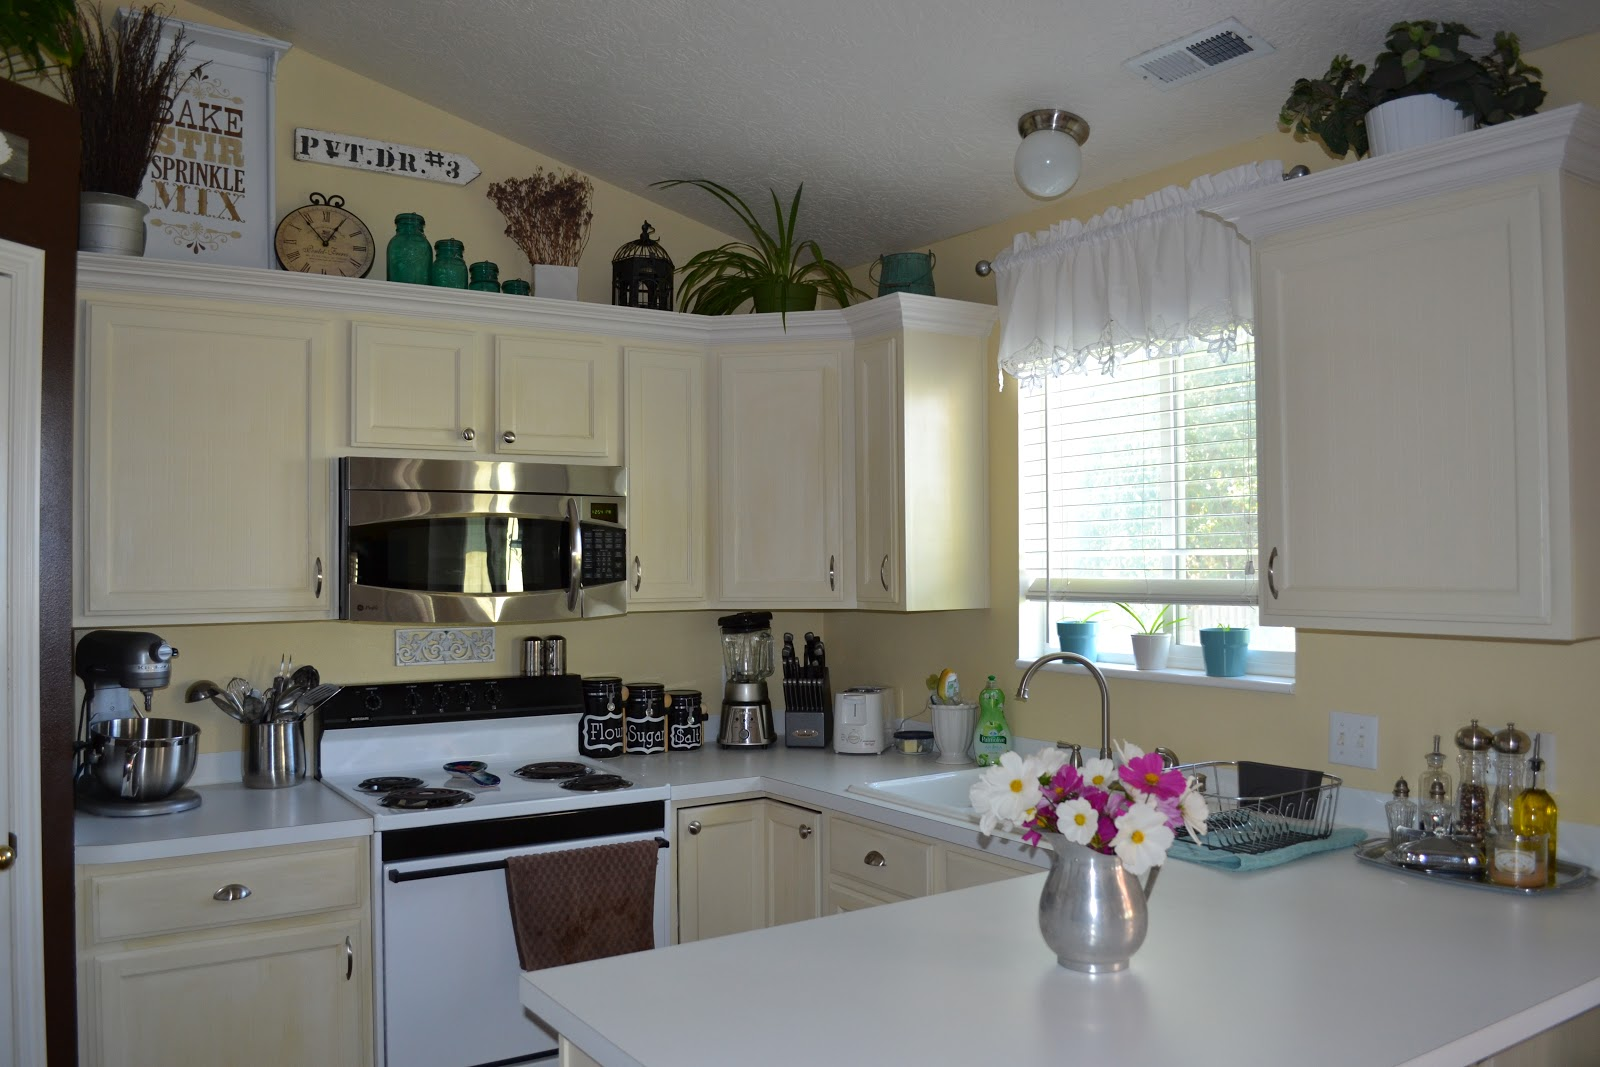 Best Kitchen Gallery: Paint Me Shabby Filling The Awkward Space Above Kitchen Cabi S of Space Above Kitchen Cabinets on cal-ite.com